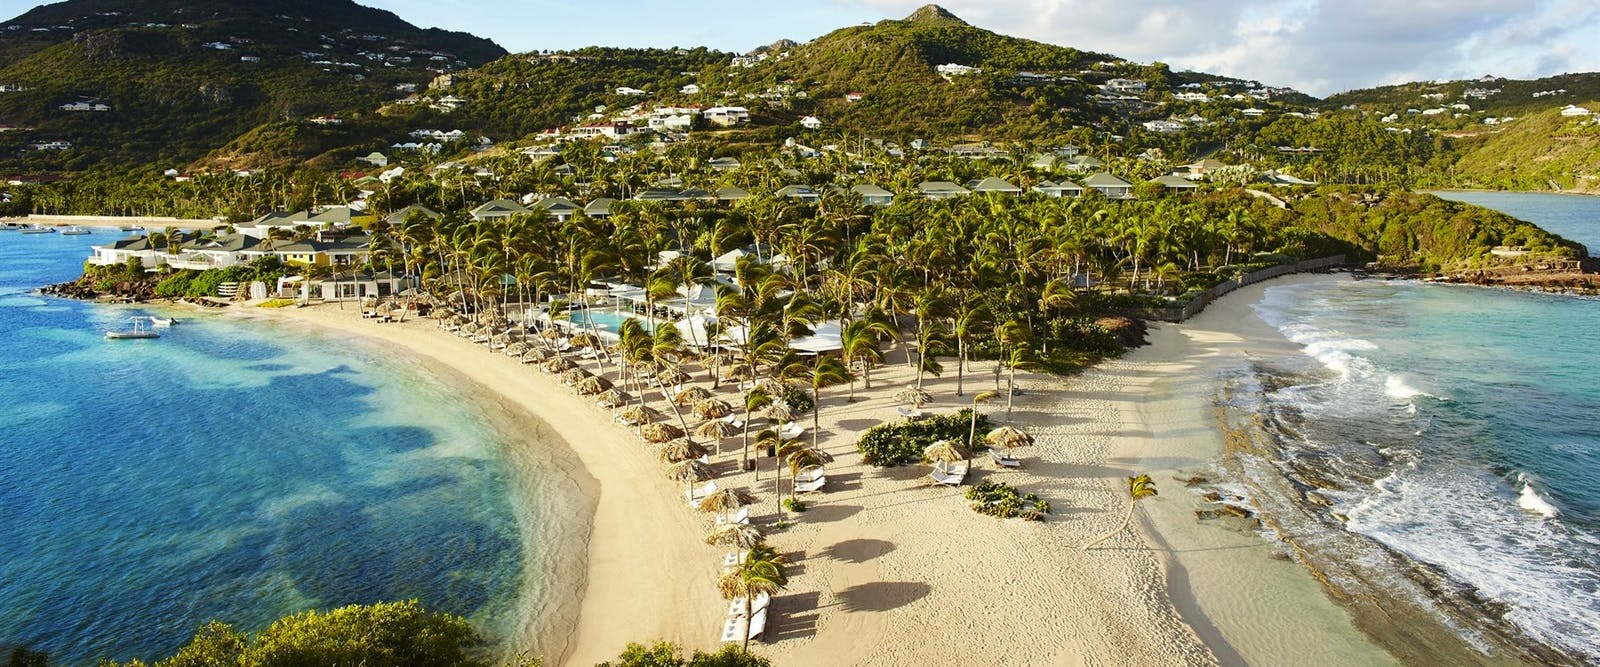 View of the bay at Le Guanahani, St Barths